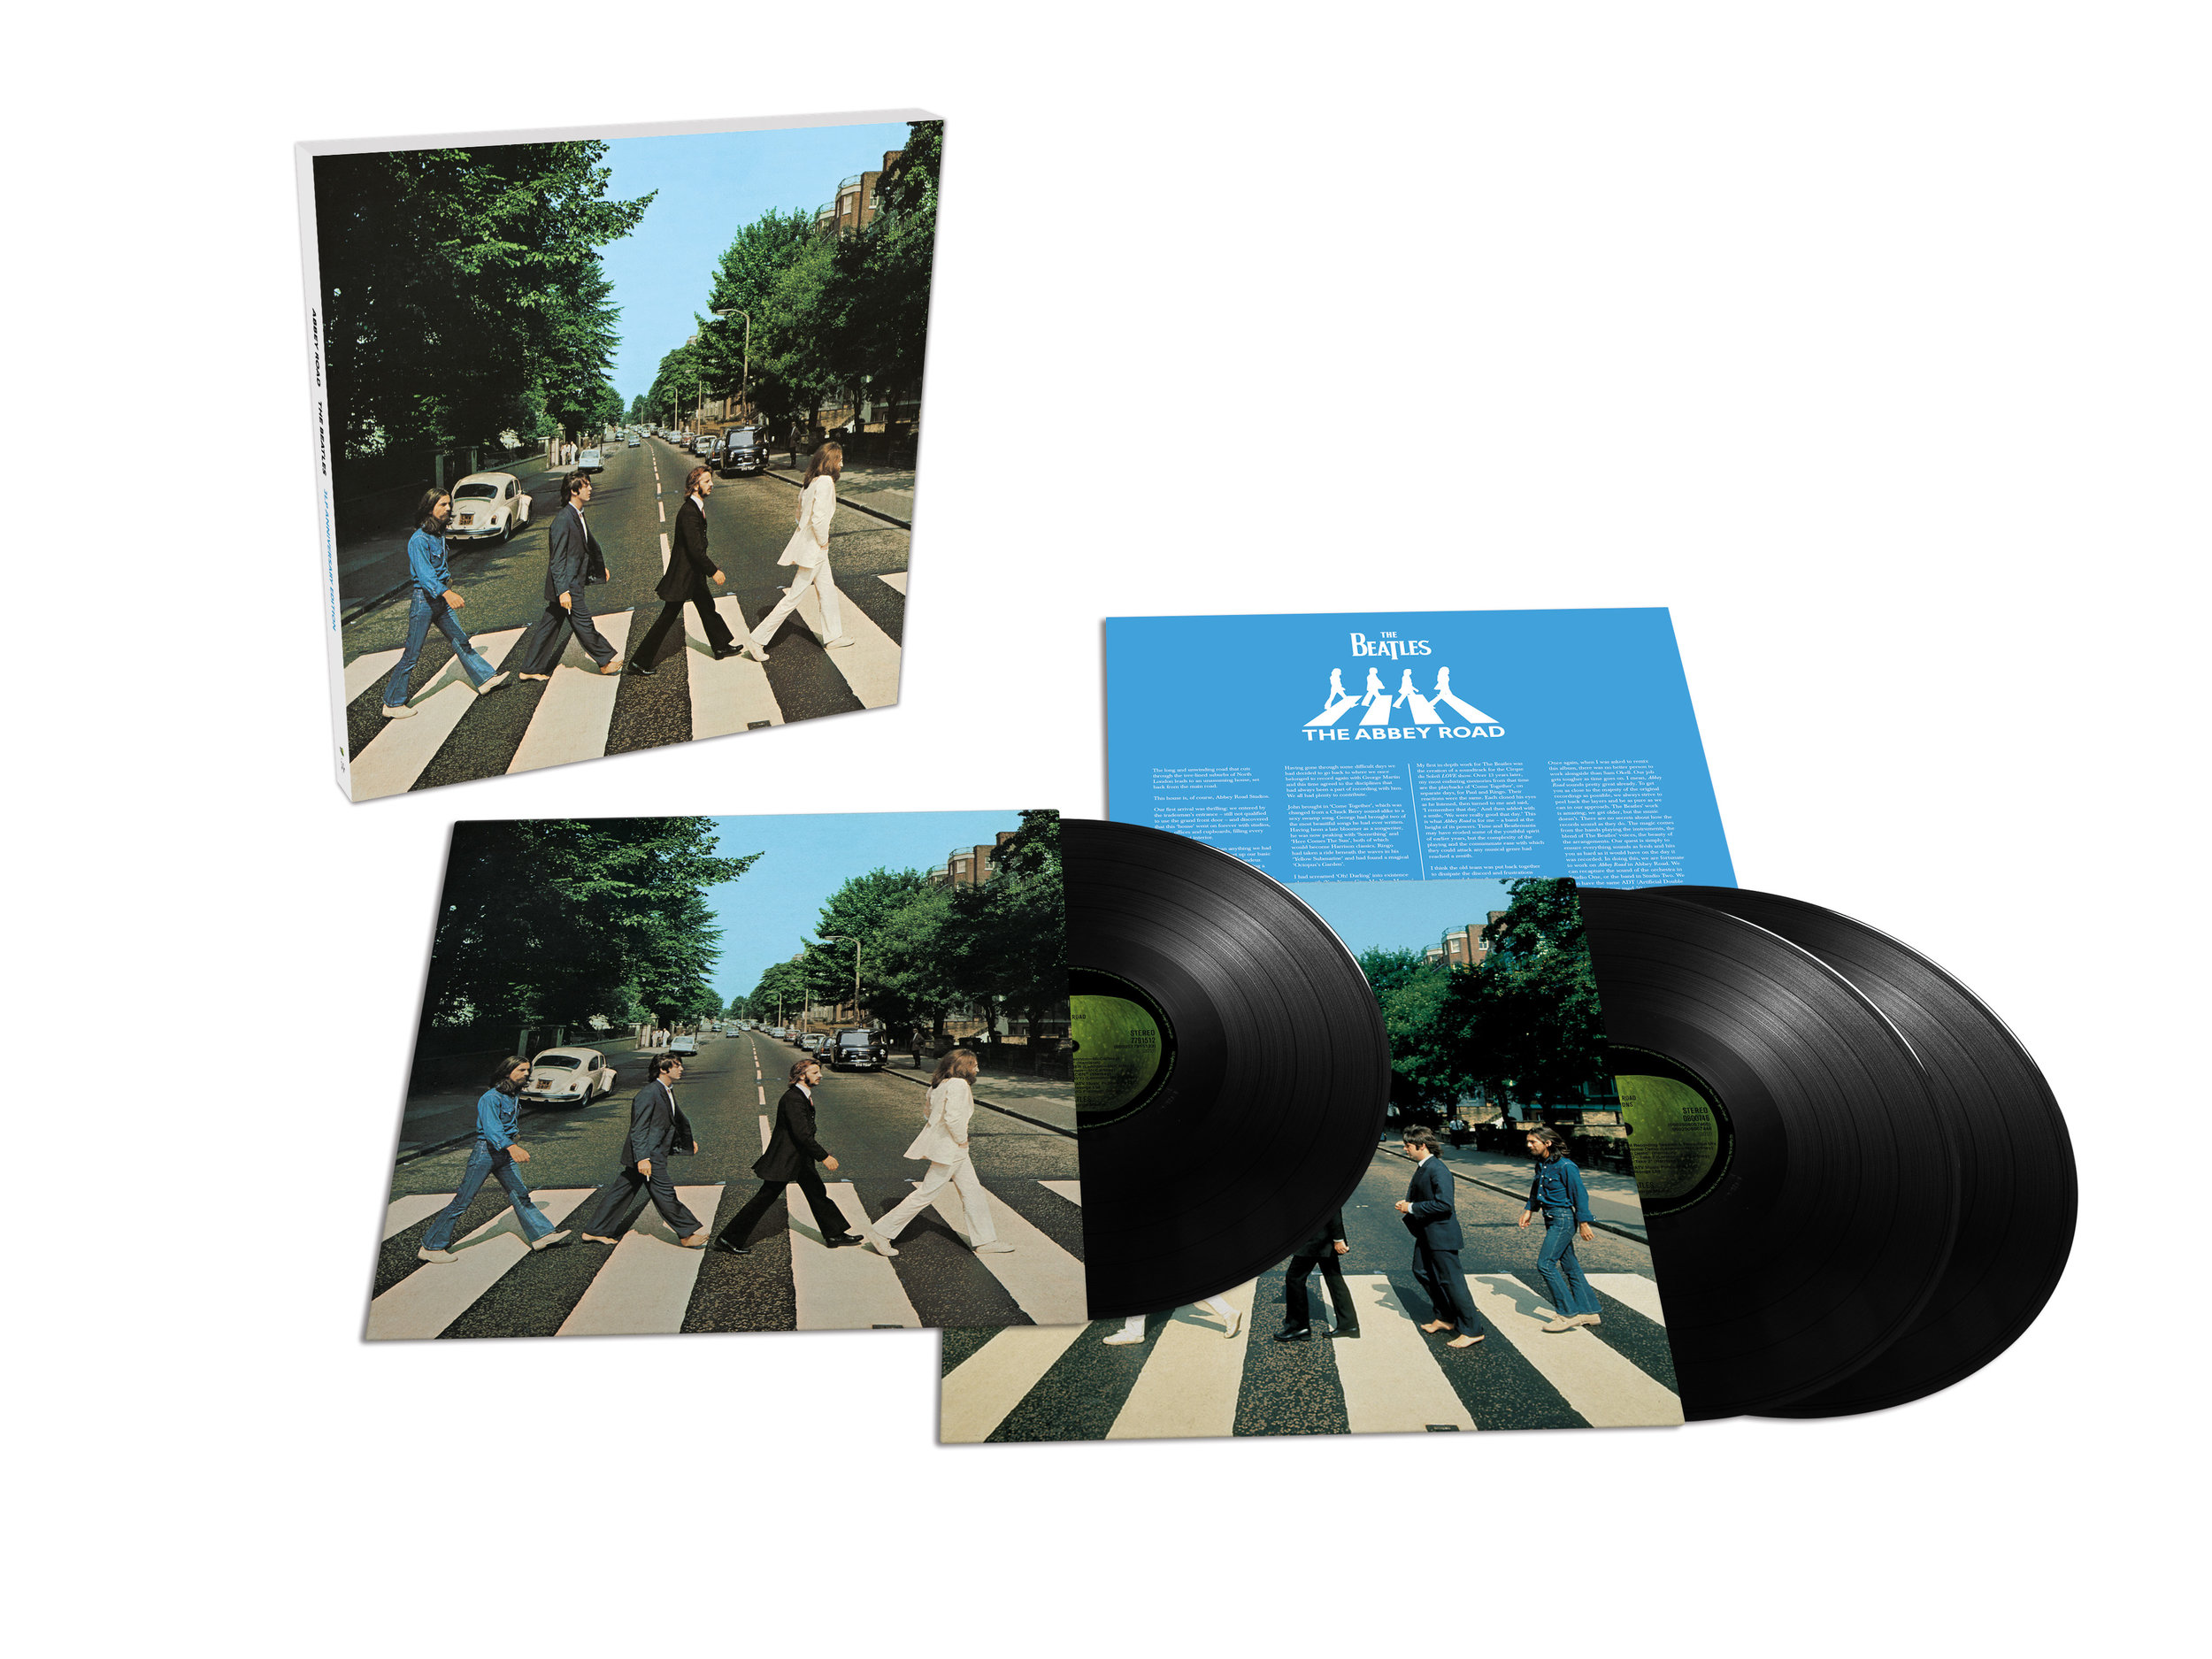 Abbey Road 's limited-edition Deluxe vinyl box set features all 40 tracks from the Super Deluxe collection on three 180-gram vinyl LPs.